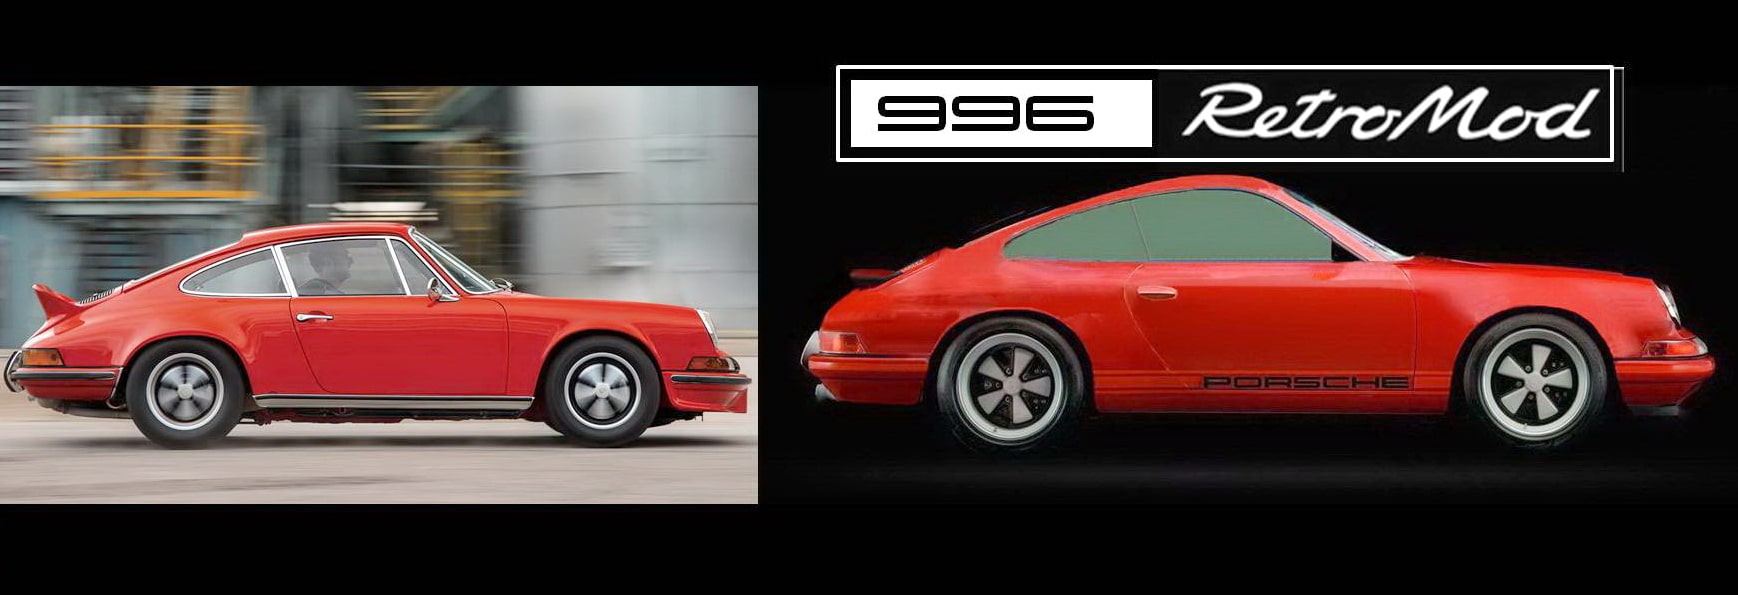 996 retromod side right BANNER Y